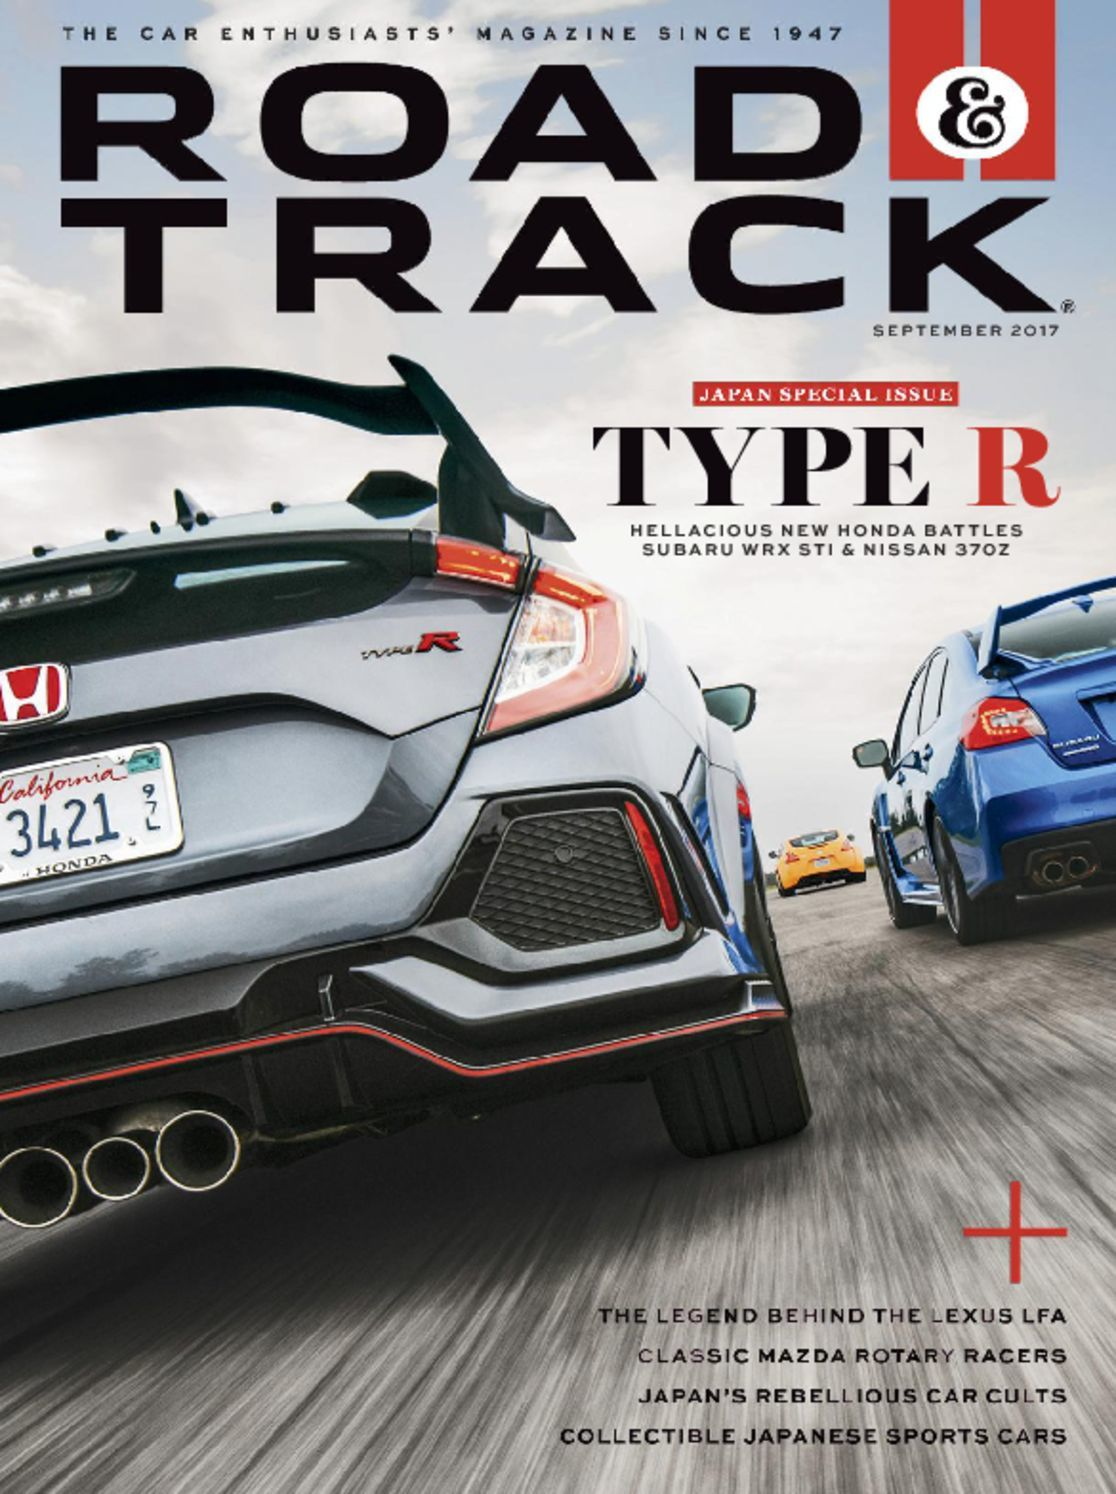 Road and Track Magazine - Type R Edition-September 2017 (Vol. 69/No. 2) - Like New